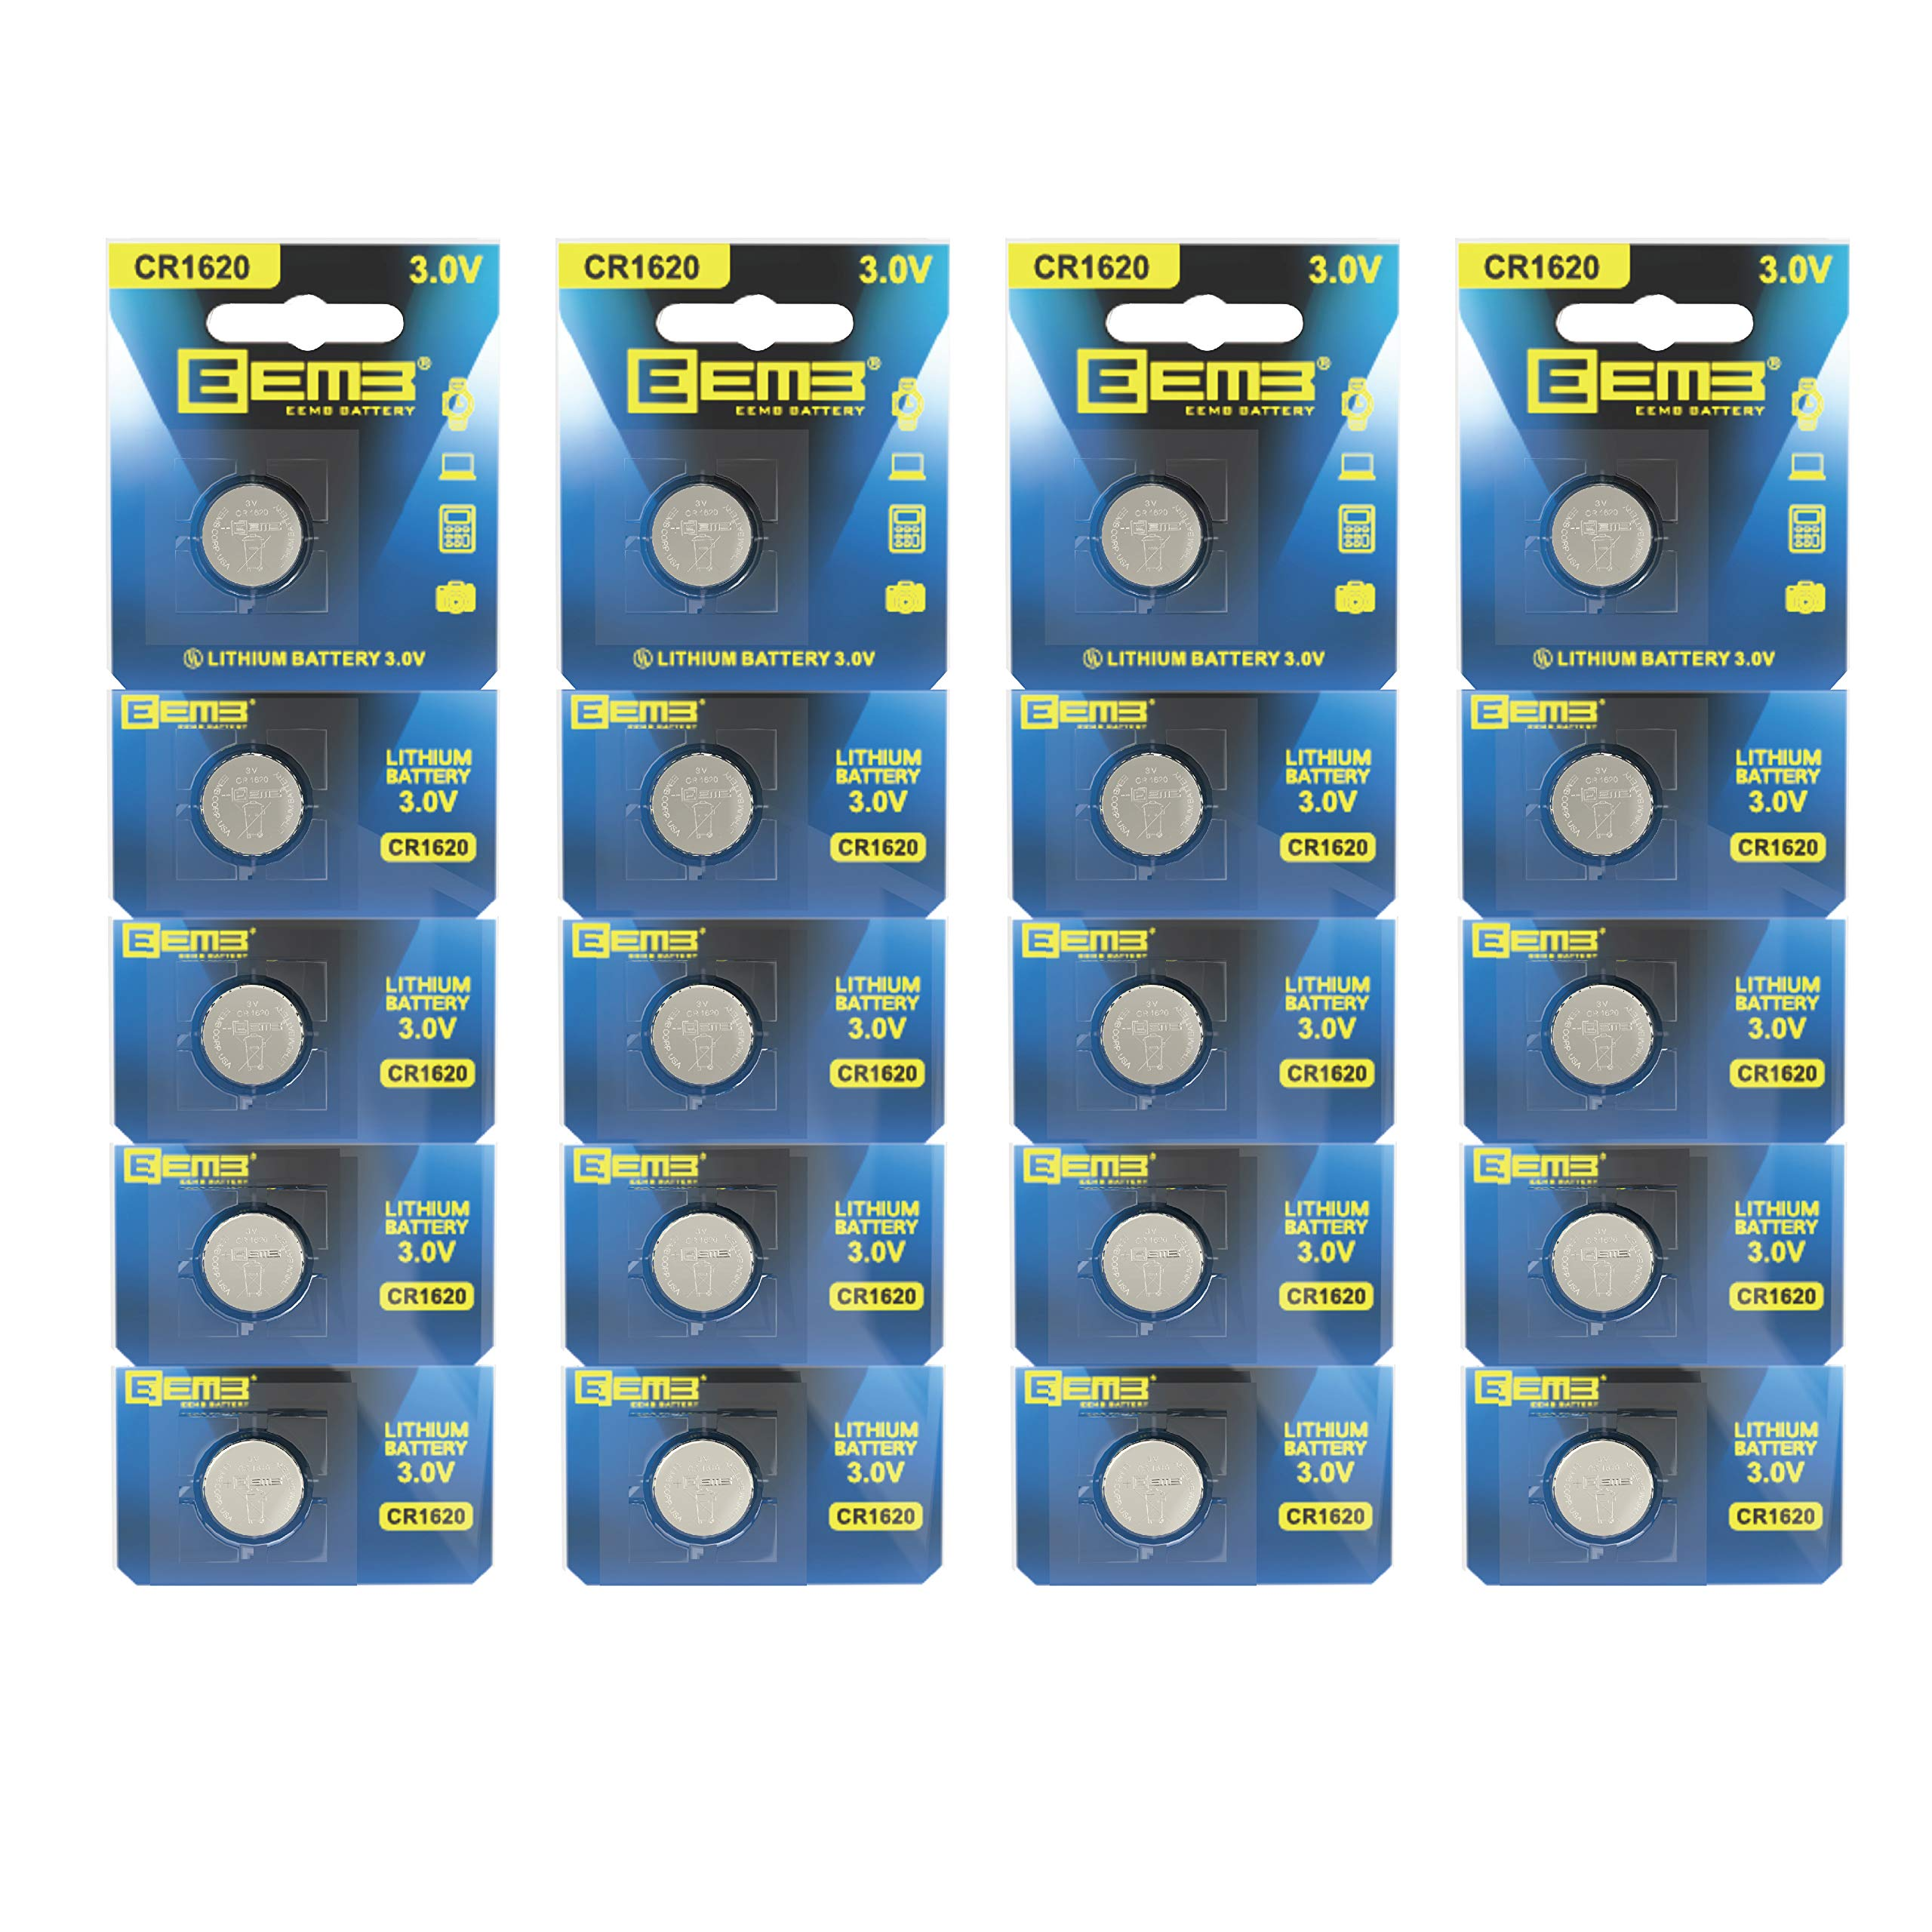 EEMB CR1620 3 V 70 mAh Battery Button Coin Cell Lithium Battery Battery Perfect UL Certified for Watches, Car Remote Key, Alarm Clock Toys (20packs)